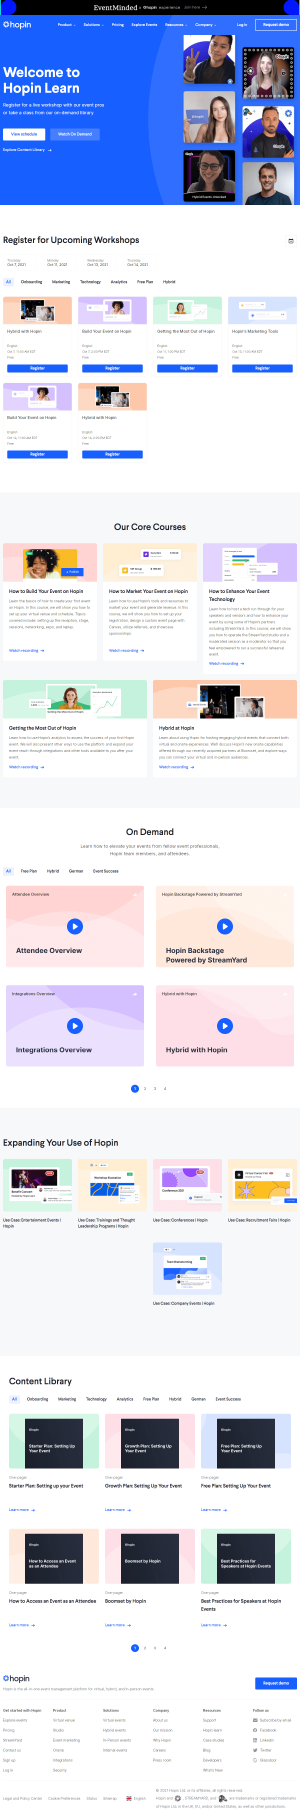 Hopin – Resources page